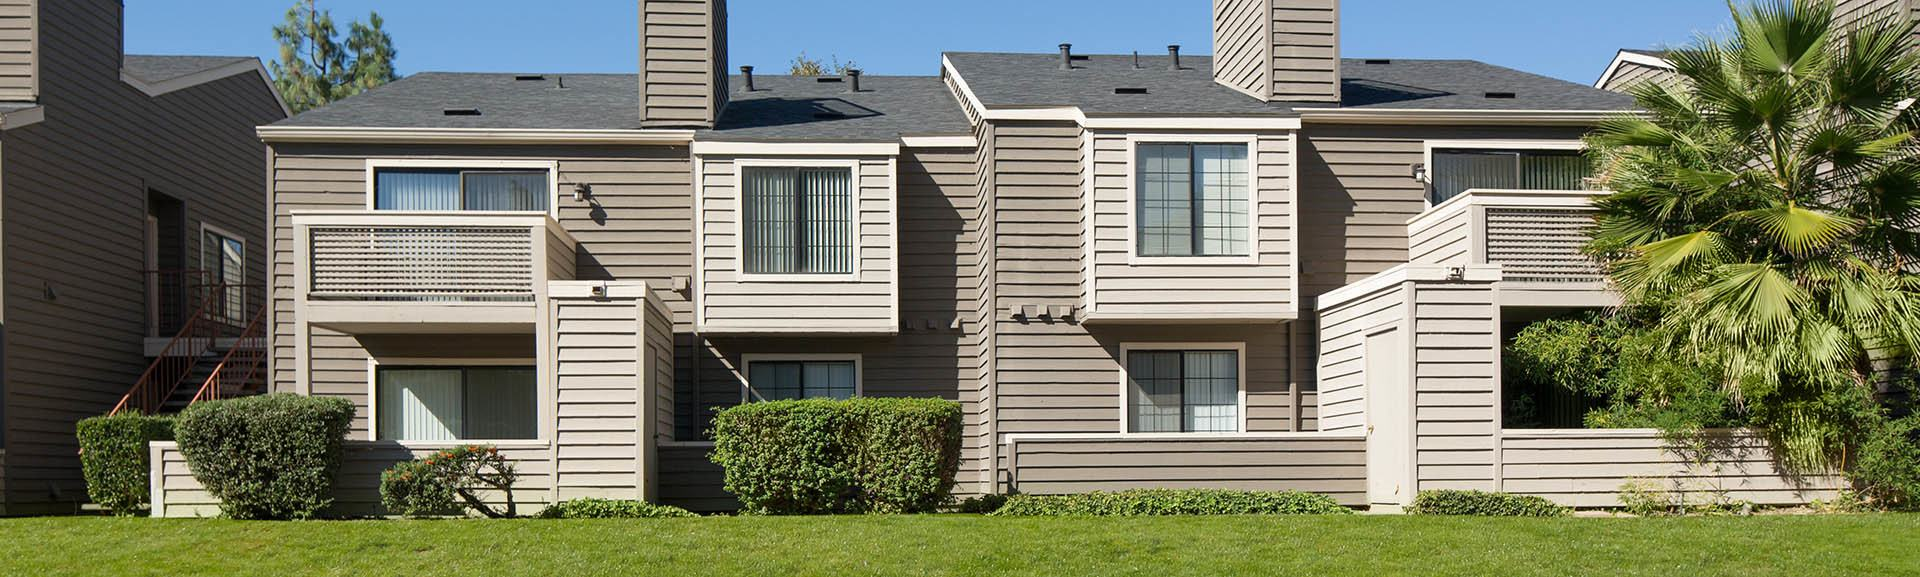 Learn about our neighborhood at Hidden Lake Condominium Rentals in Sacramento, CA on our website